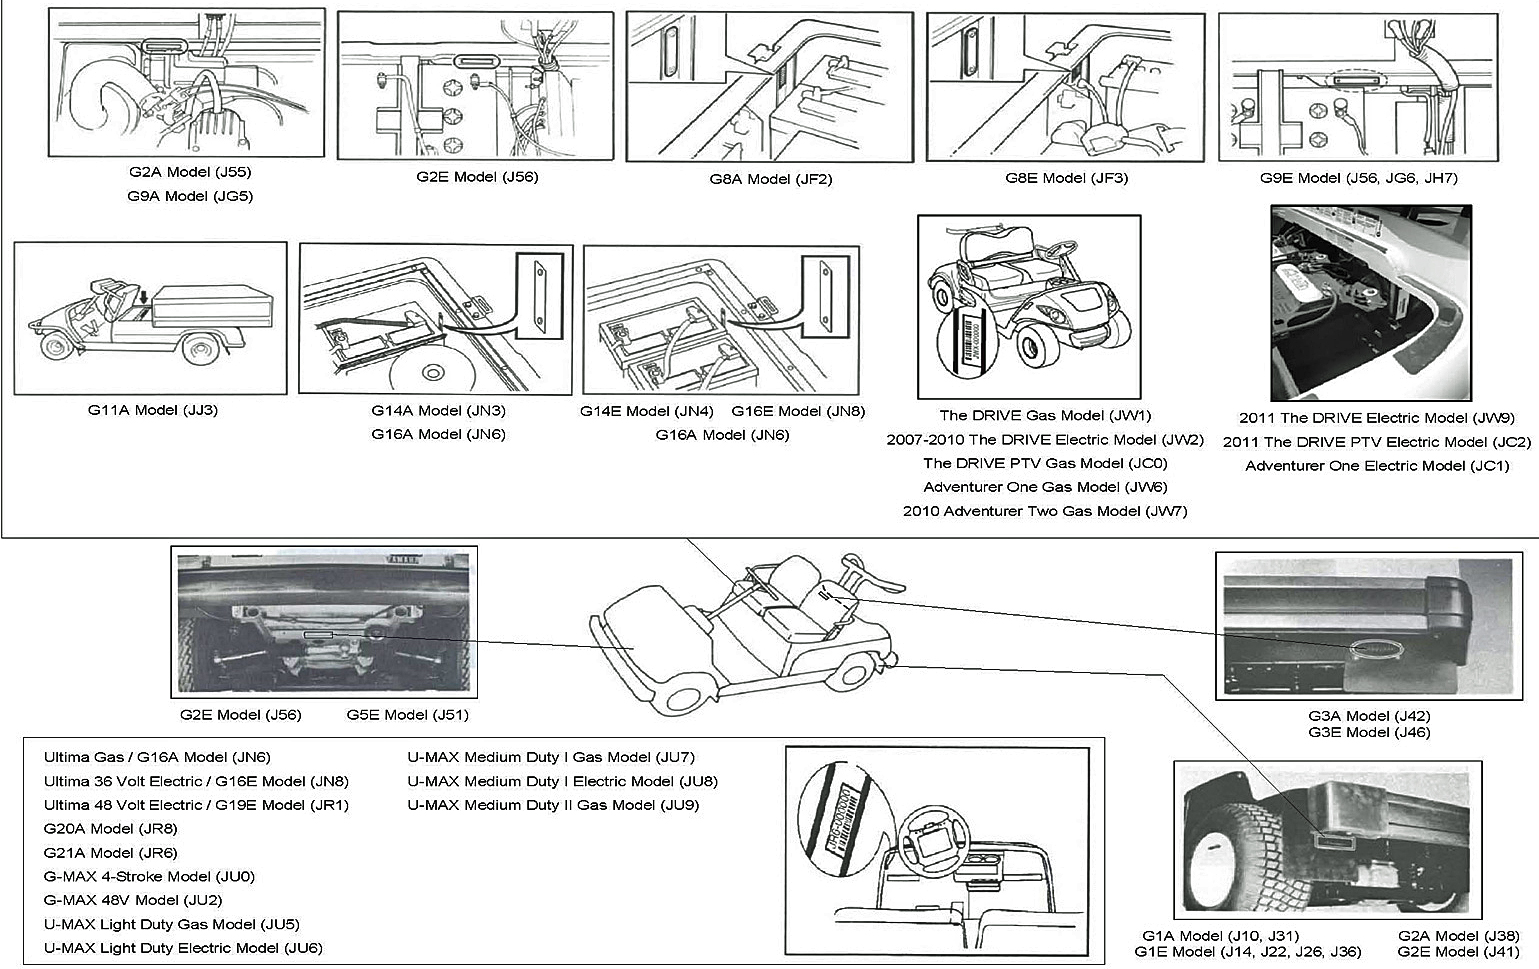 yamaha wiring diagram for electric golf cart the wiring diagram yamaha gas golf cart wiring diagrams electrical wiring wiring diagram